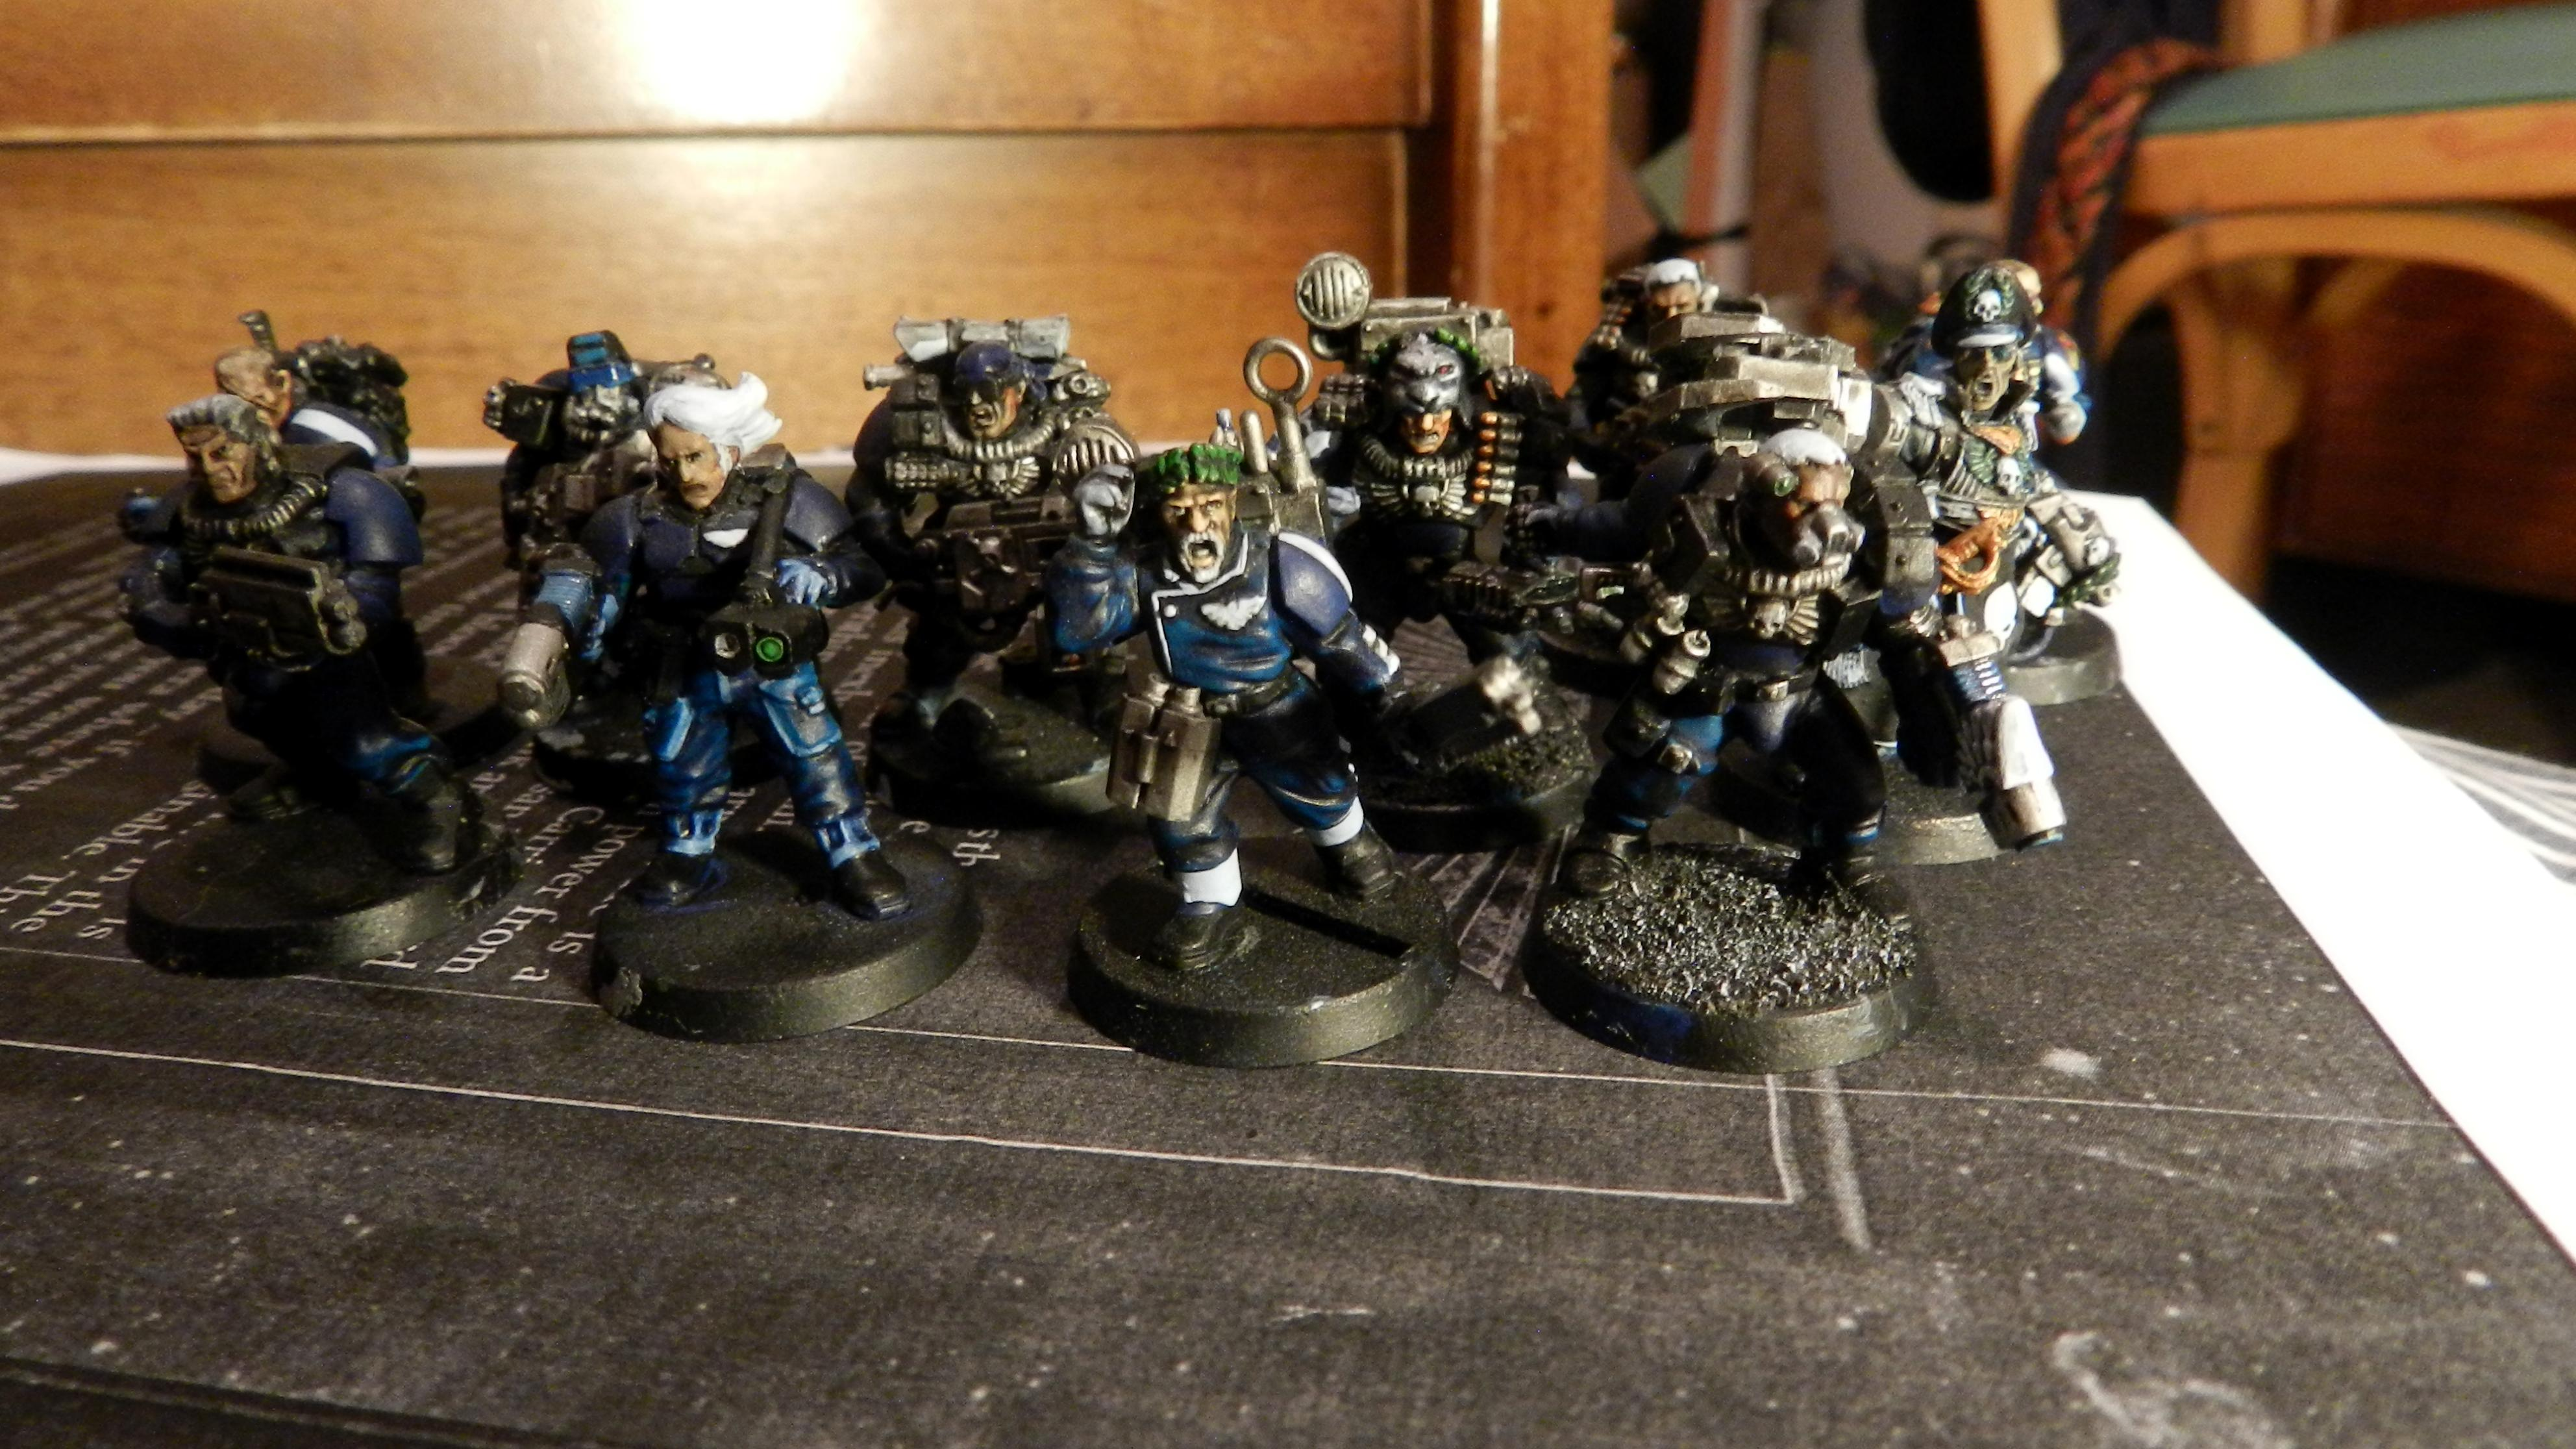 Adeptus Arbites, Advisor, Cadians, Captain, Carapace, Ccs, Command Squad, Commander, Commissar, Commissar Yarrick, Company Command Squad, Conversion, Count As, Gears Of War, Grenadier, Grenadiers, Guardsmen, Harker, Imperial Guard, Junior Officer, Lord Commissar, Medic, Officer, Plasma Gun, Power Fist, Scouts, Veteran, Warhammer 40,000, Work In Progress, Yarrick